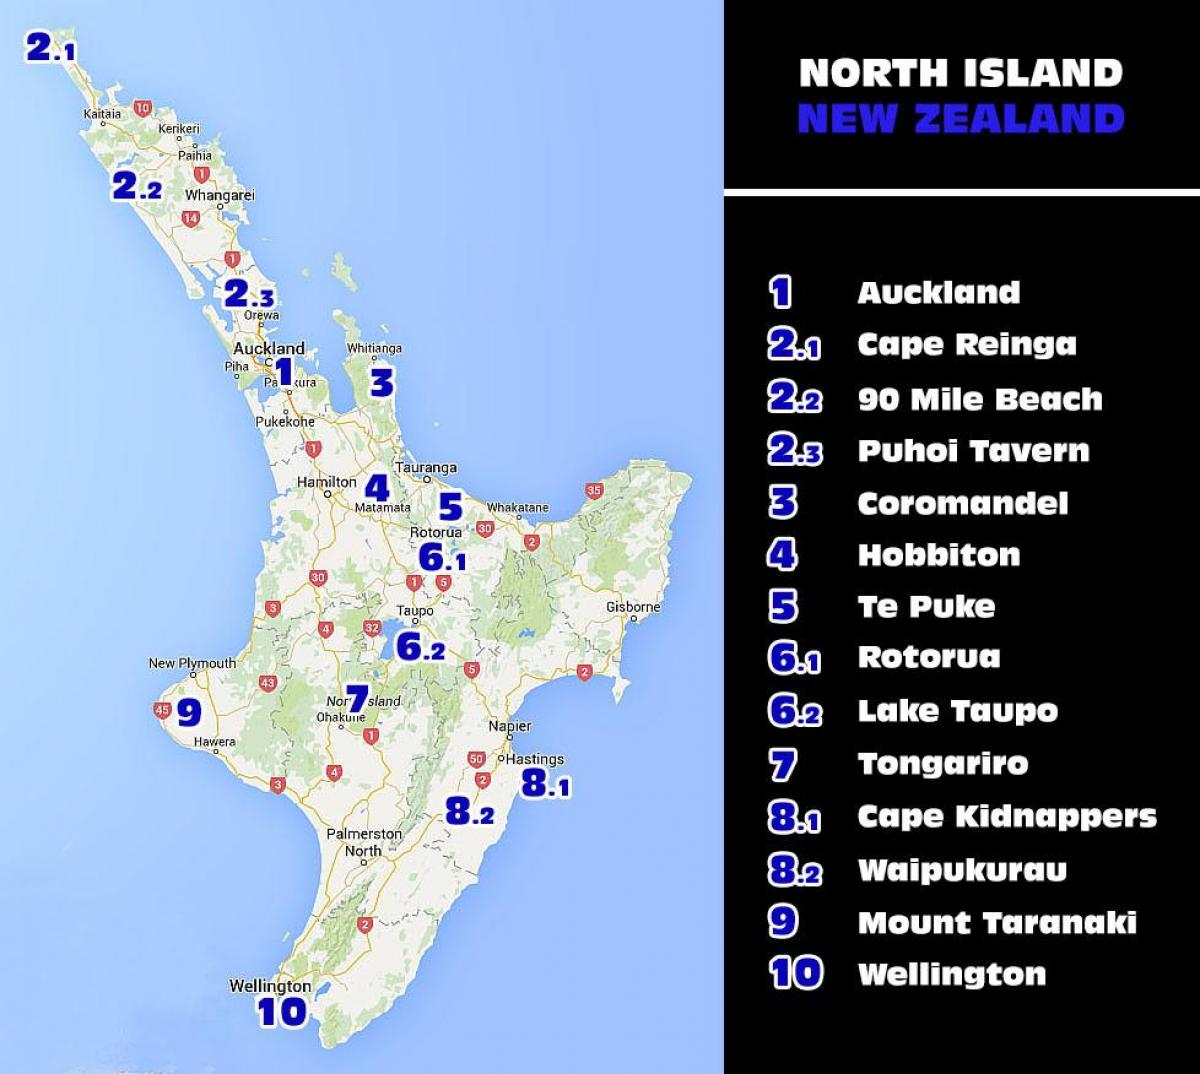 New Zealand Tourist Map North Island.New Zealand North Island Attractions Map Map Of New Zealand North